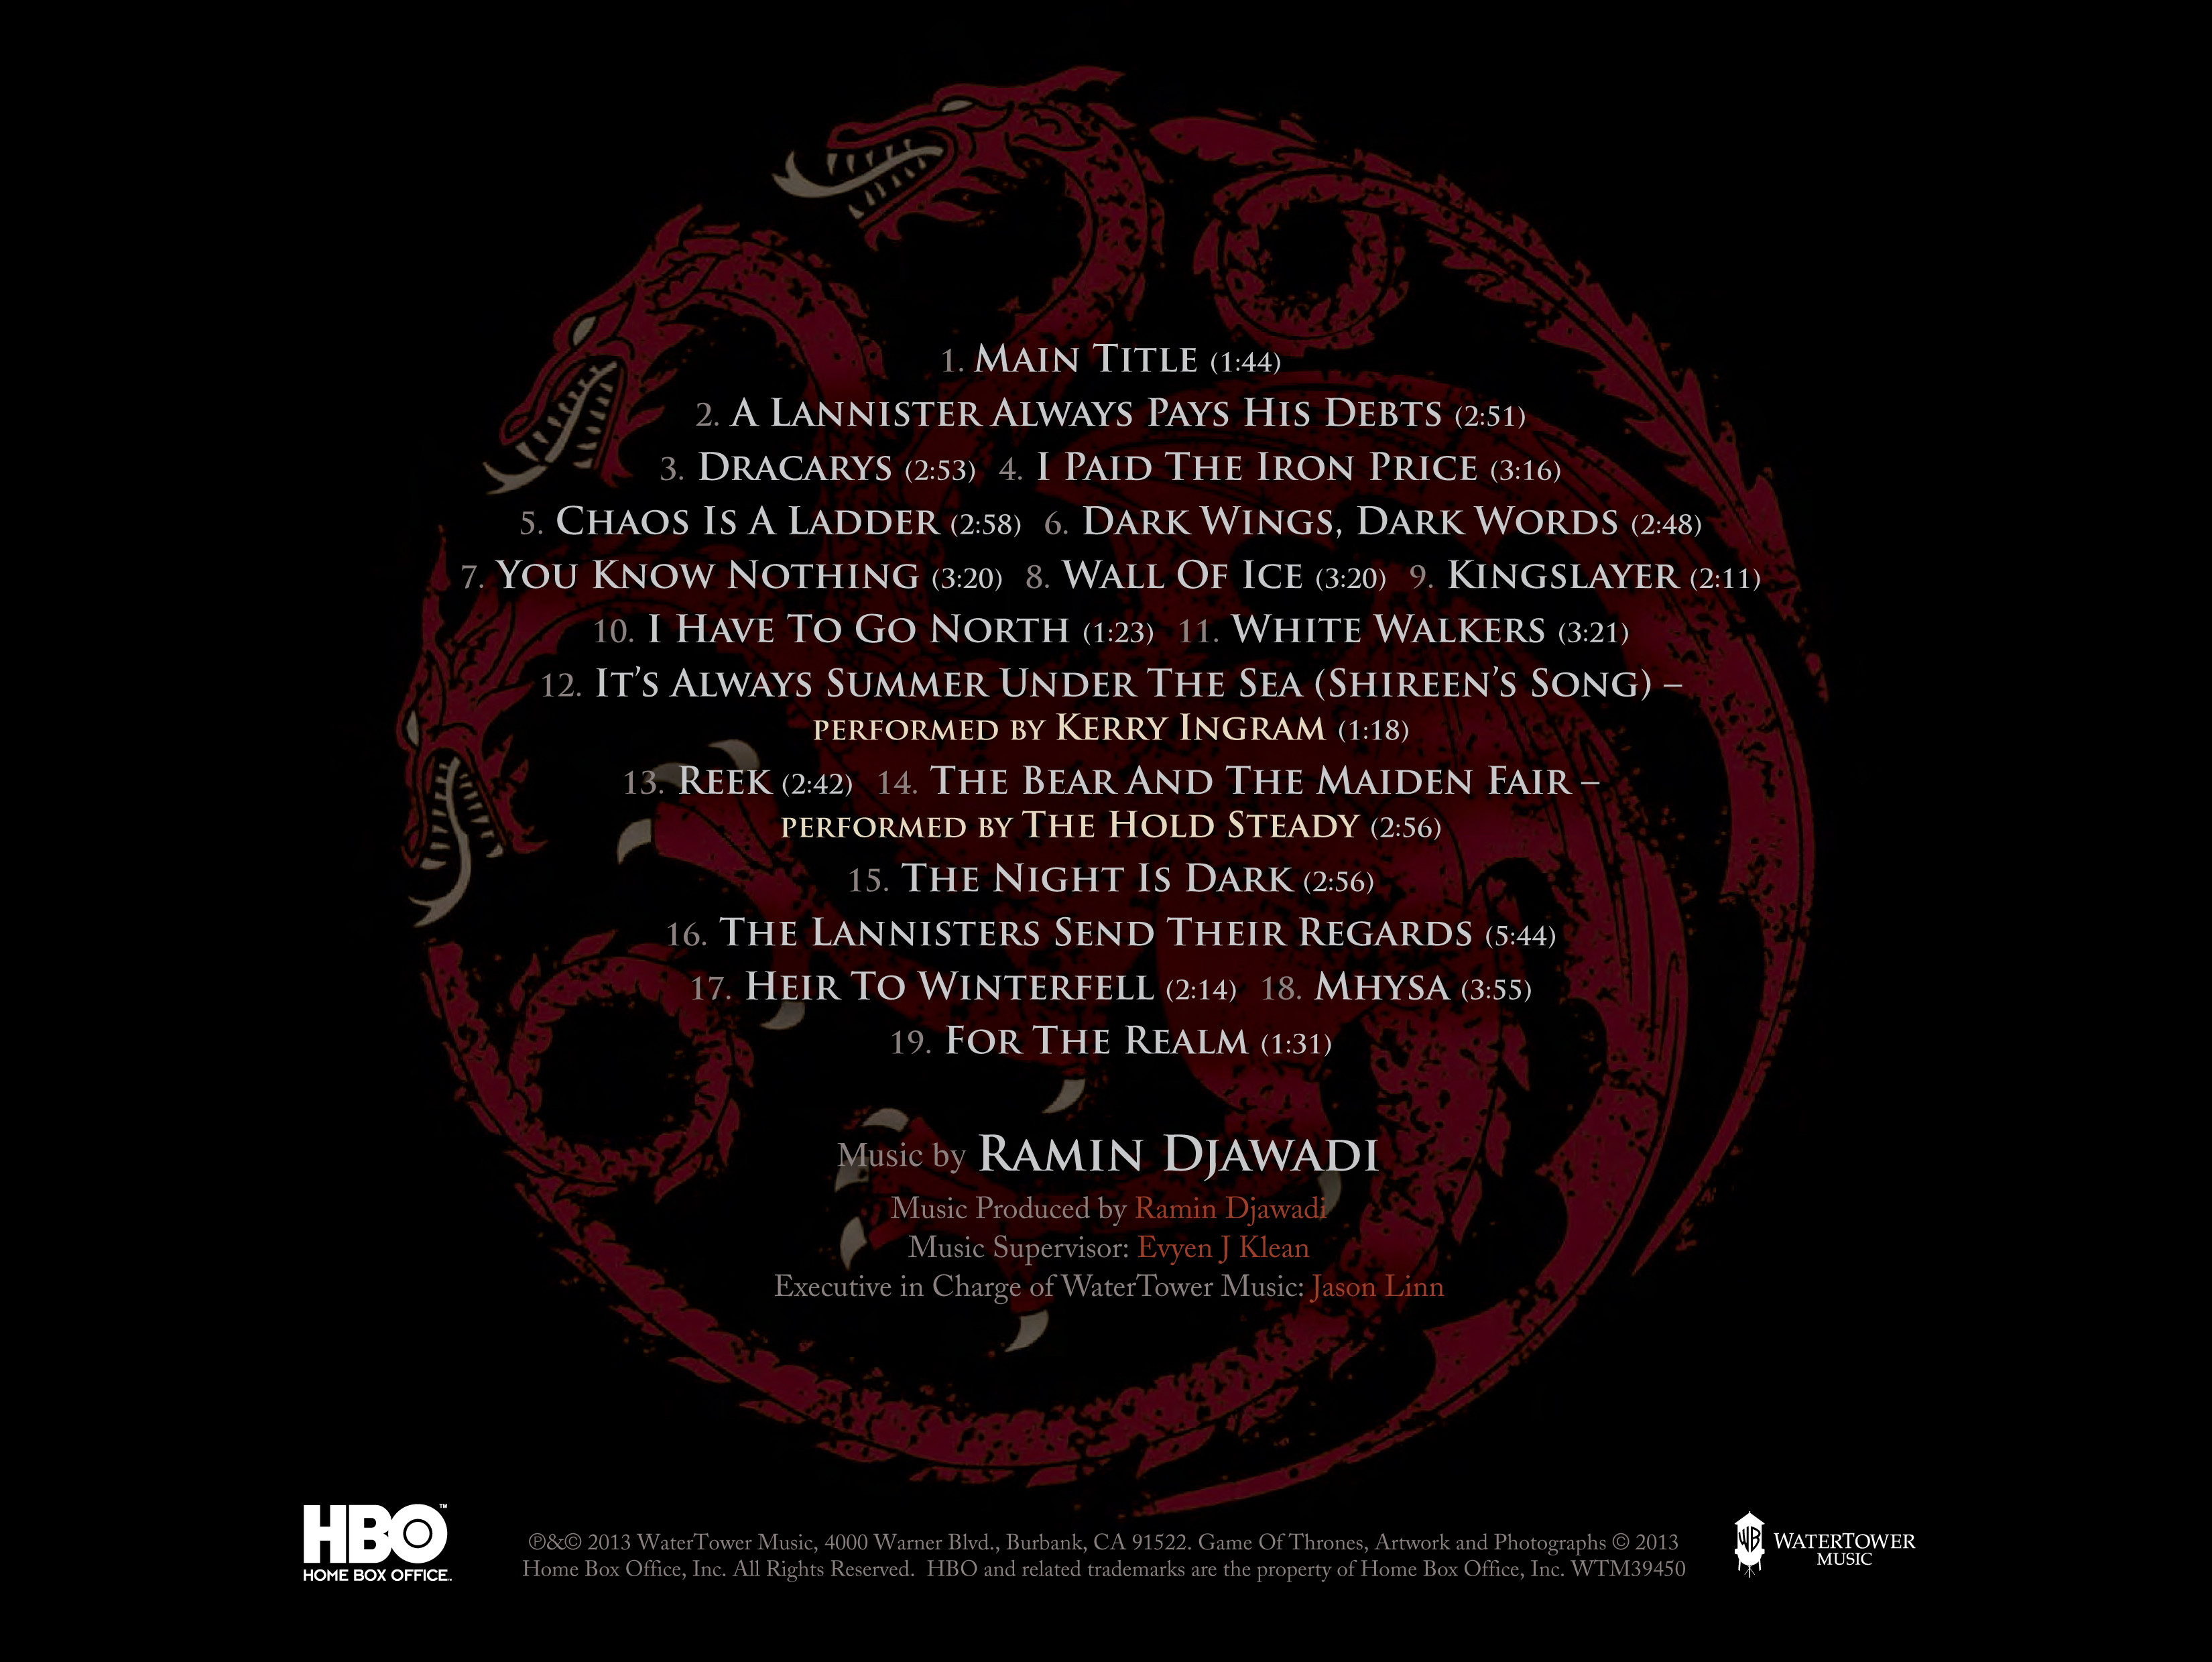 Game of thrones soundtrack season 3 tpb - Che ne sara di noi